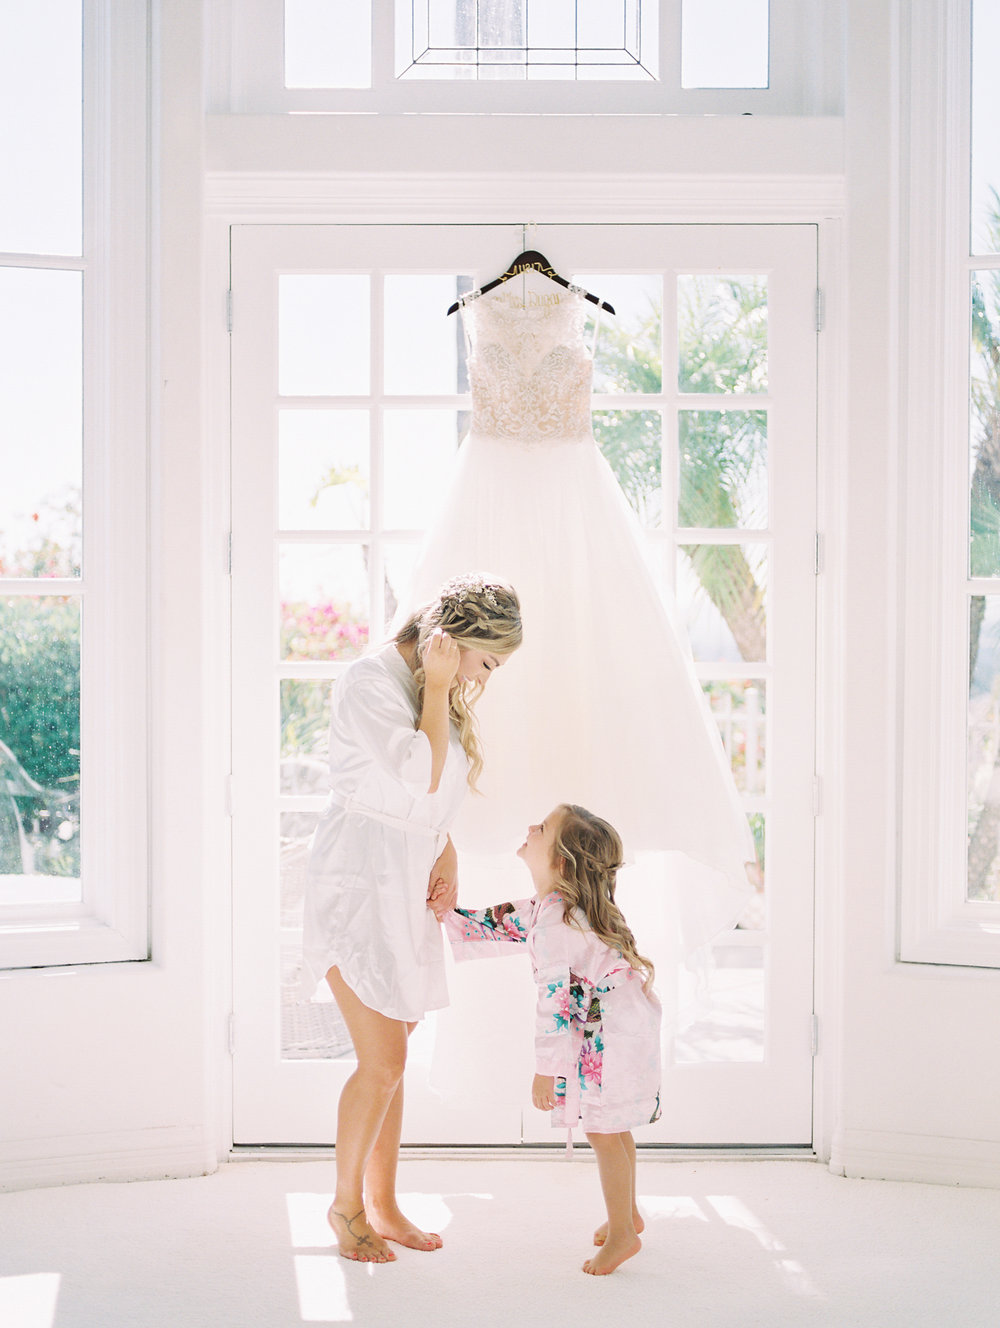 san-diego-thevanitybelle.com-bride hair-wedding stylist-flower girl-mother and daughter- wedding day-getting ready-